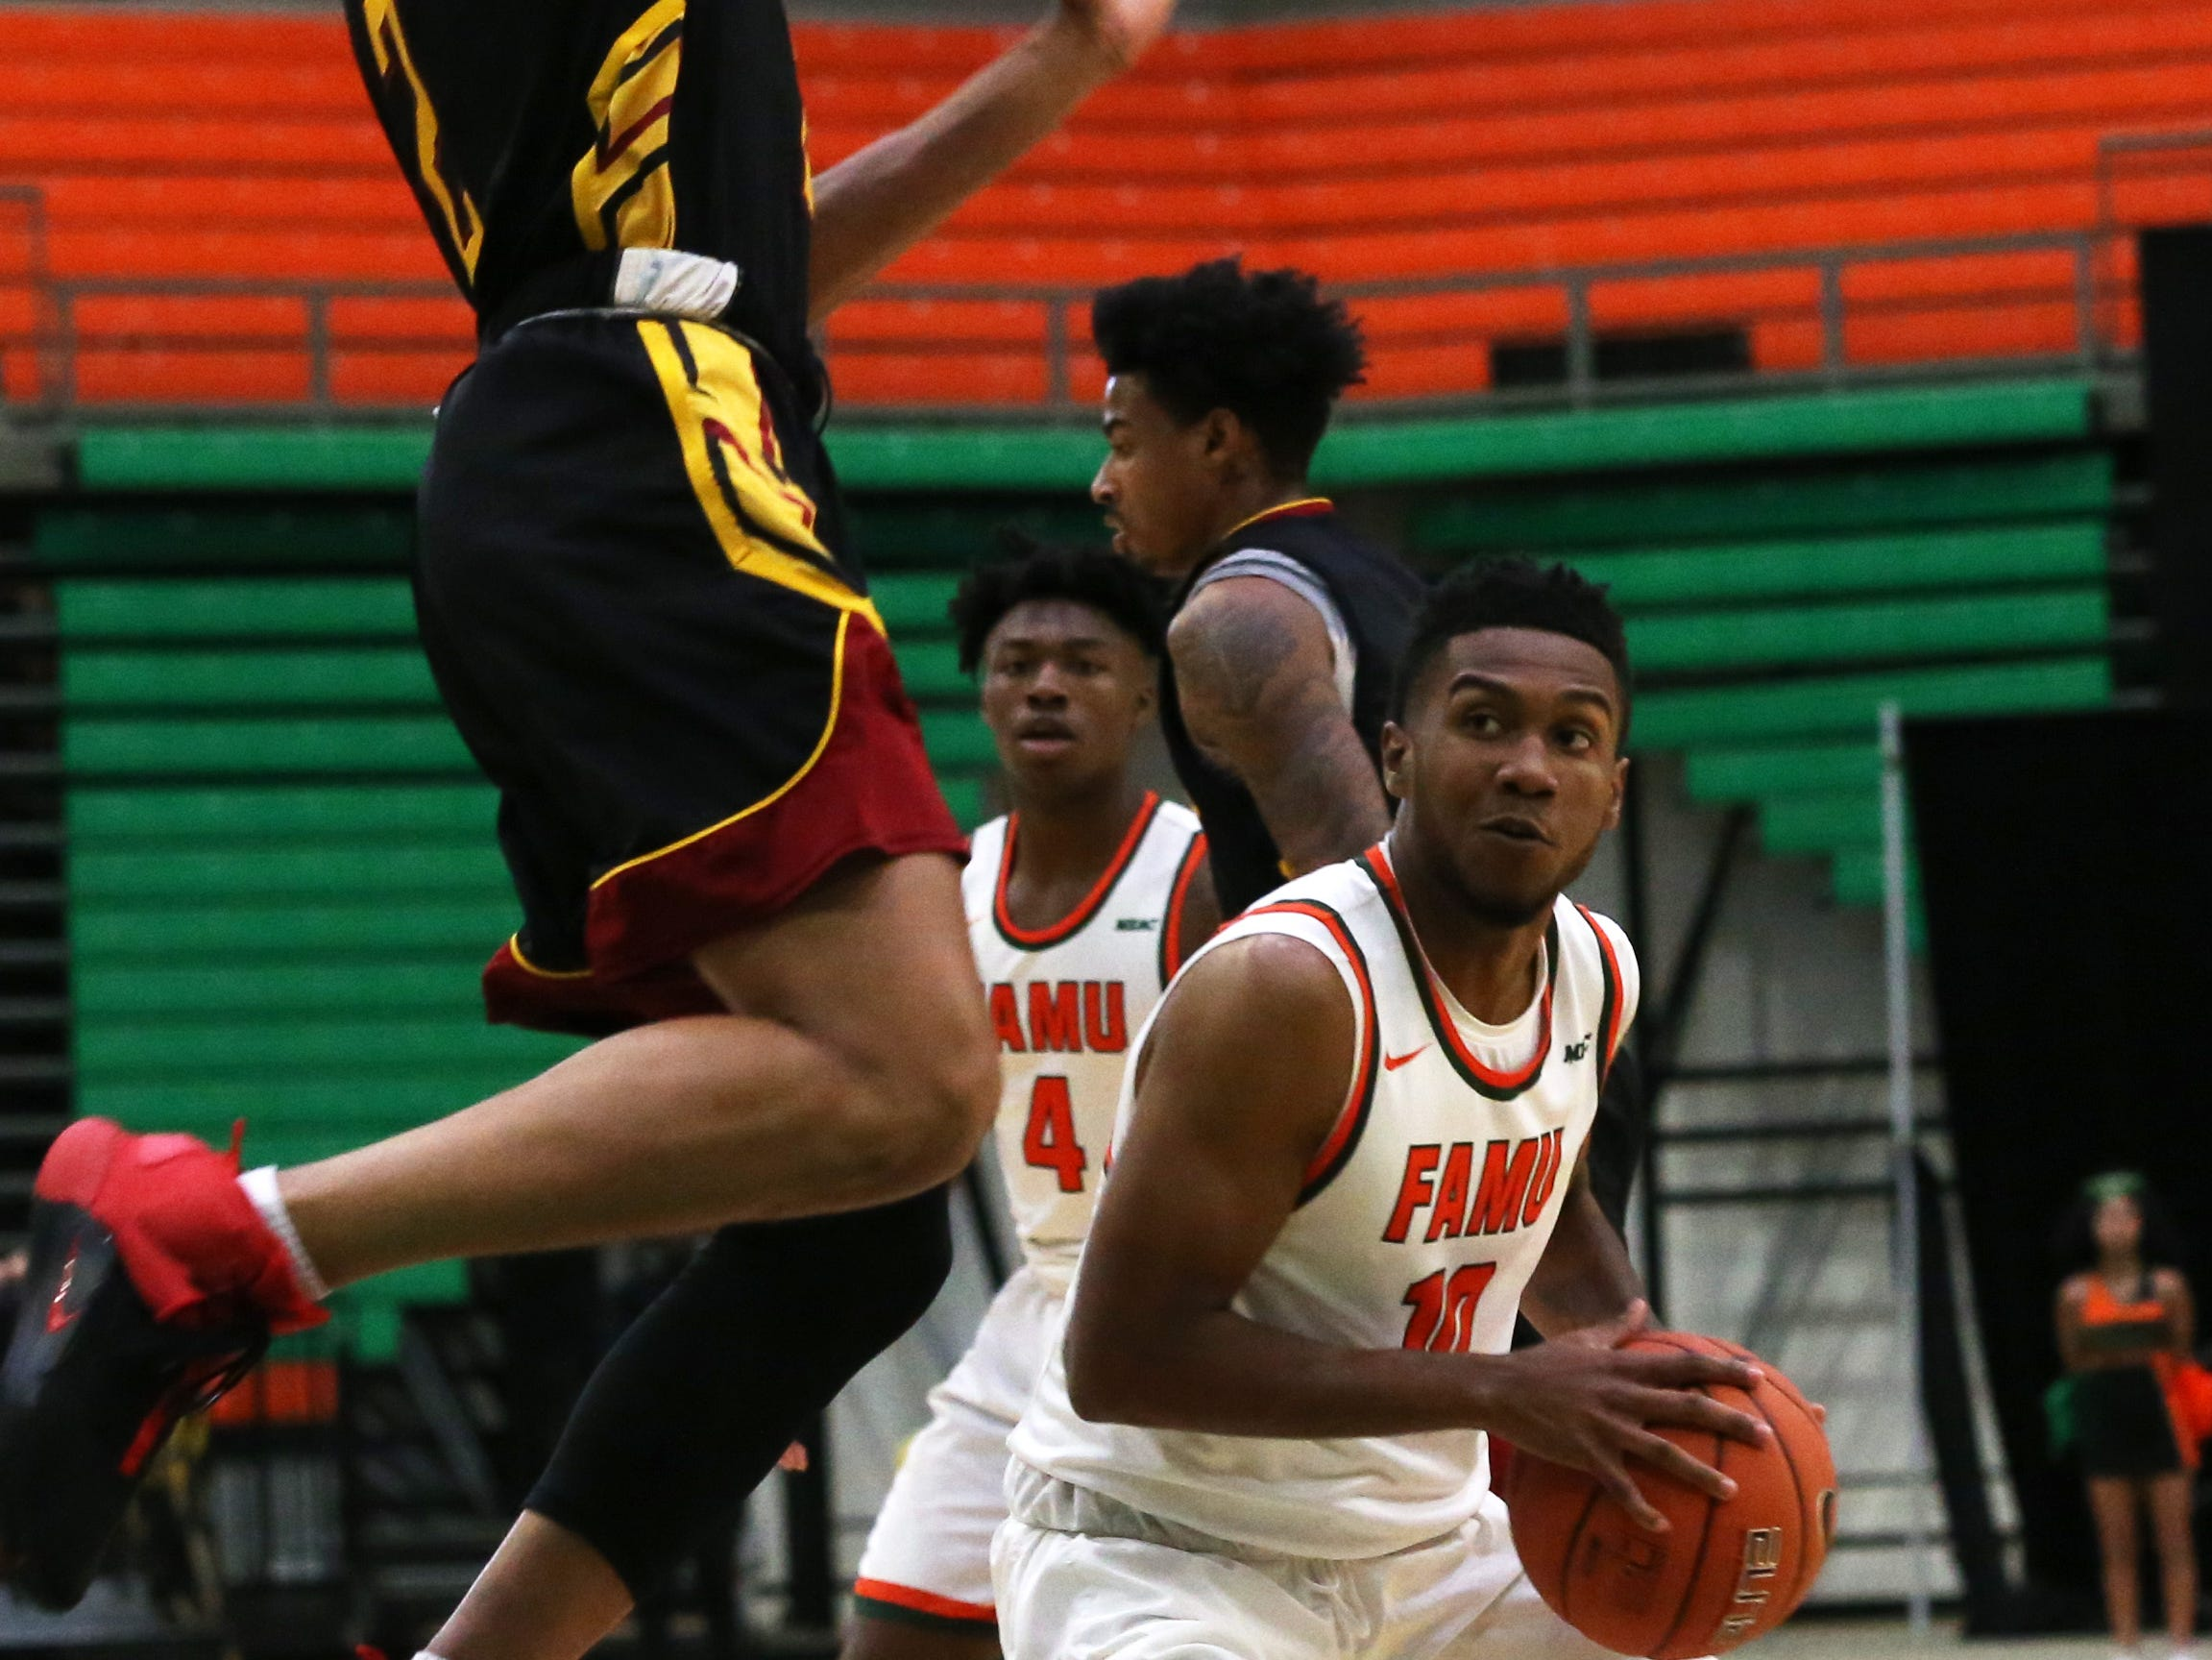 Florida A&M Rattlers guard Richard Anderson (10) tries to shoot the ball as the FAMU Rattlers take on the Tuskegee Golden Tigers in their first home game of the season in the Lawson Center, Saturday, Nov. 10, 2018.